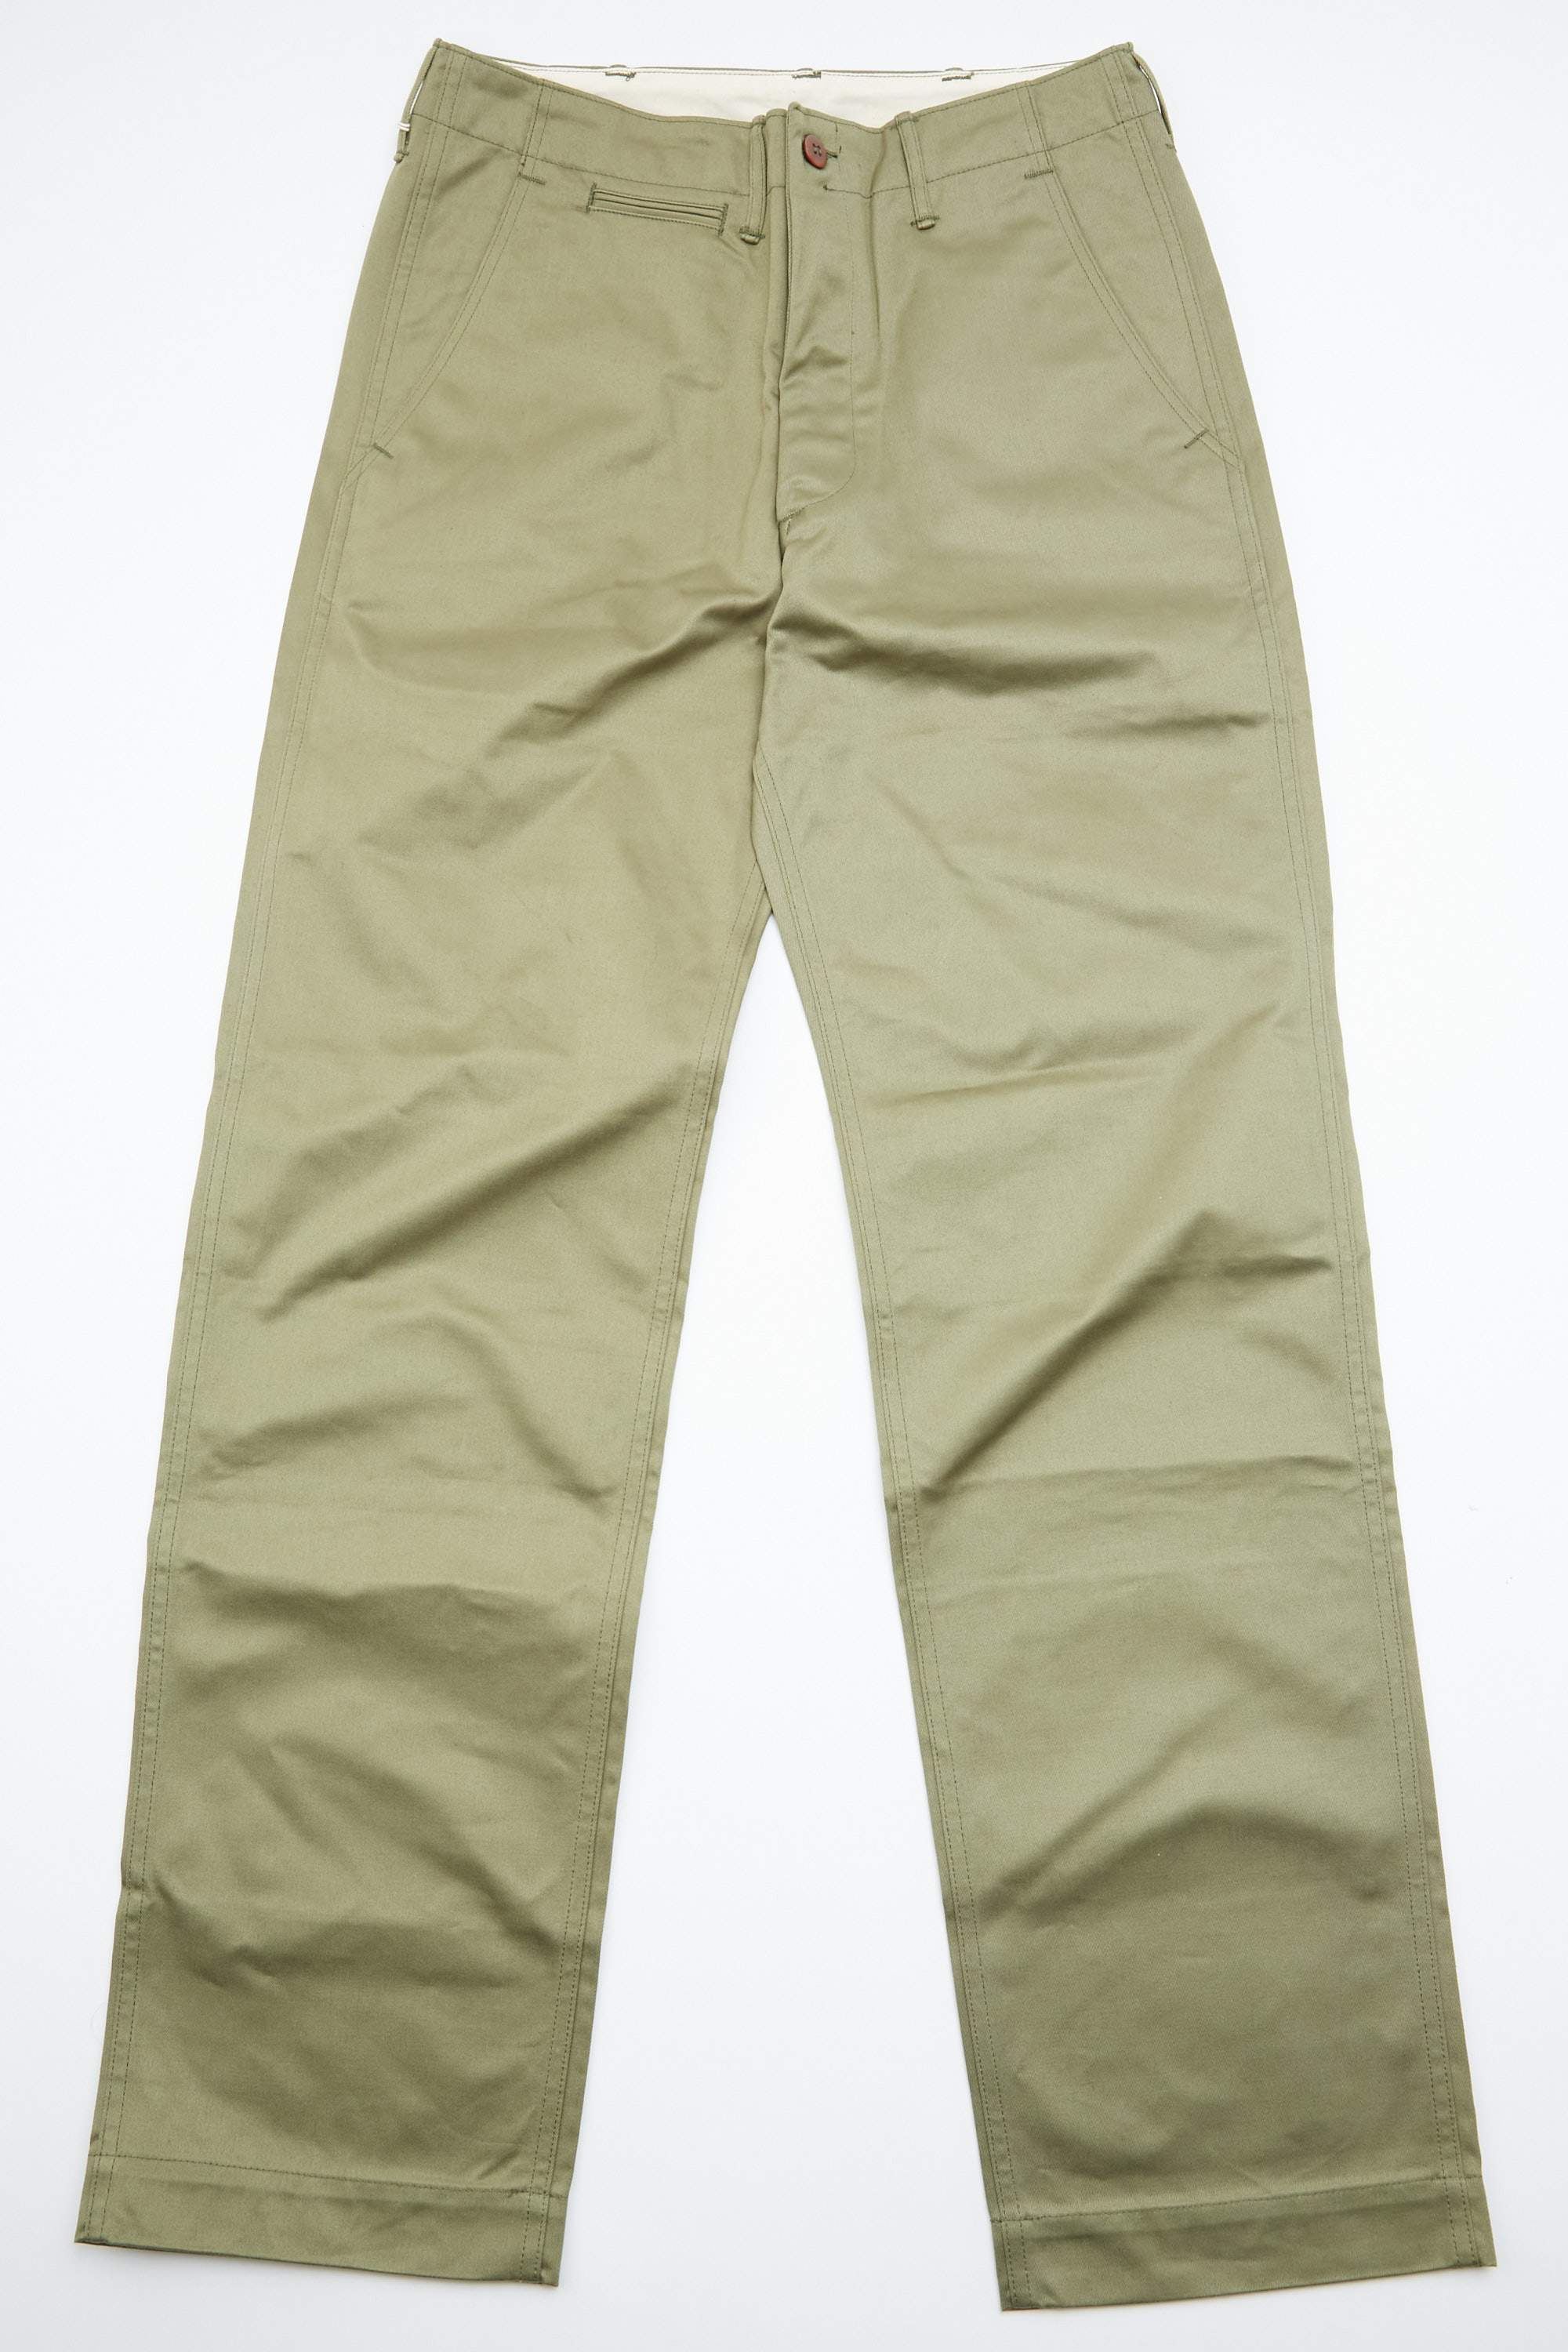 1940s Trousers, Mens Wide Leg Pants Warehouse  Co. Lot 1082 Duck Digger Chinos - West Point Green $175.00 AT vintagedancer.com